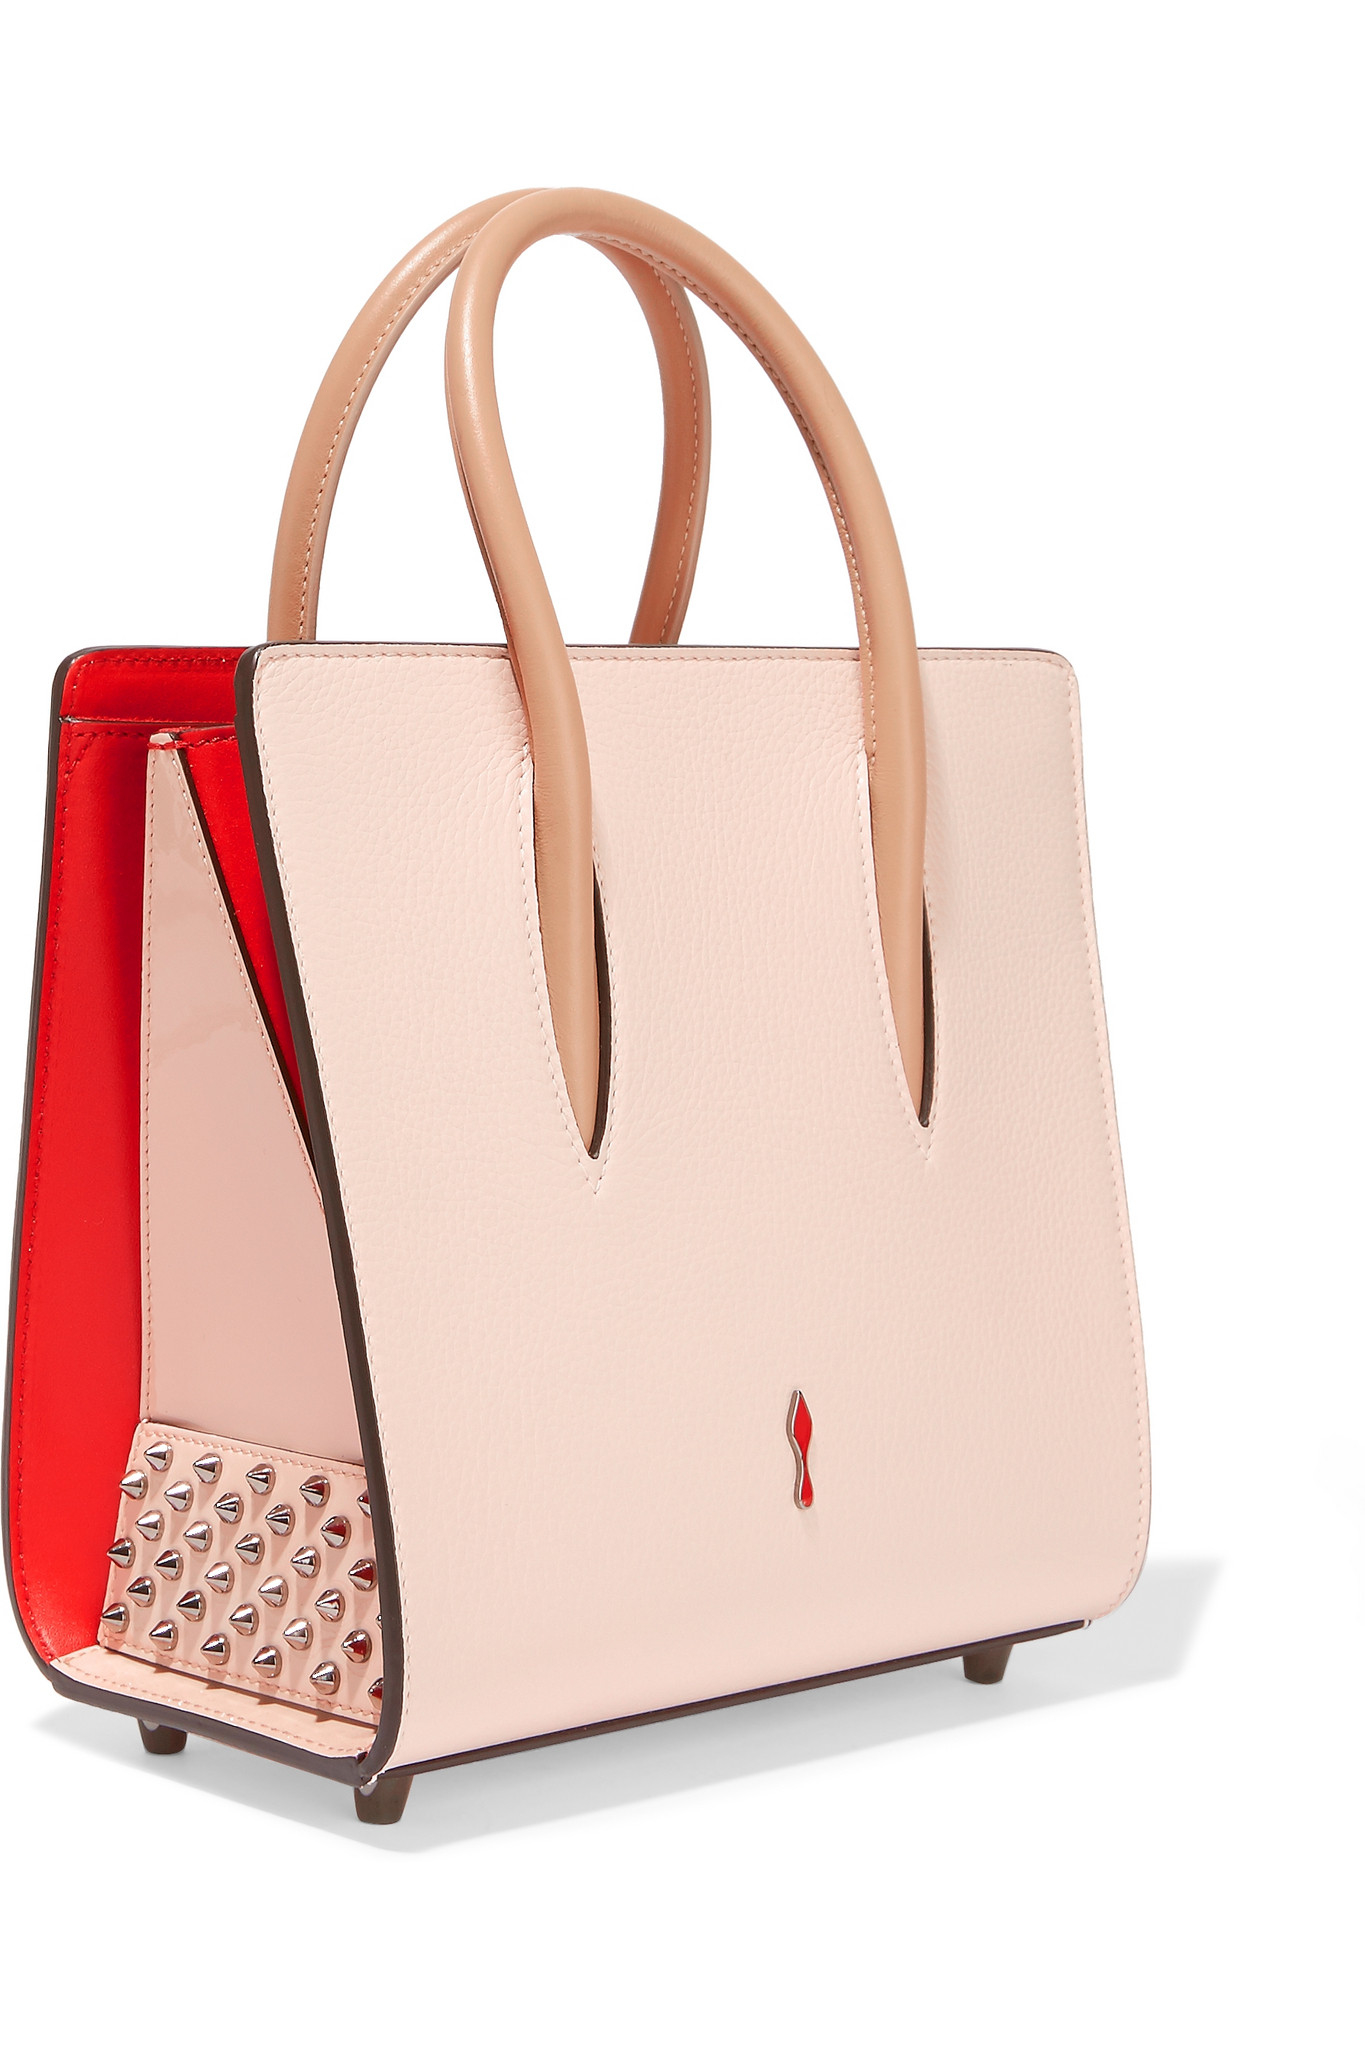 90863d8b5d7 Christian Louboutin Pink Paloma Small Spiked Leather Tote